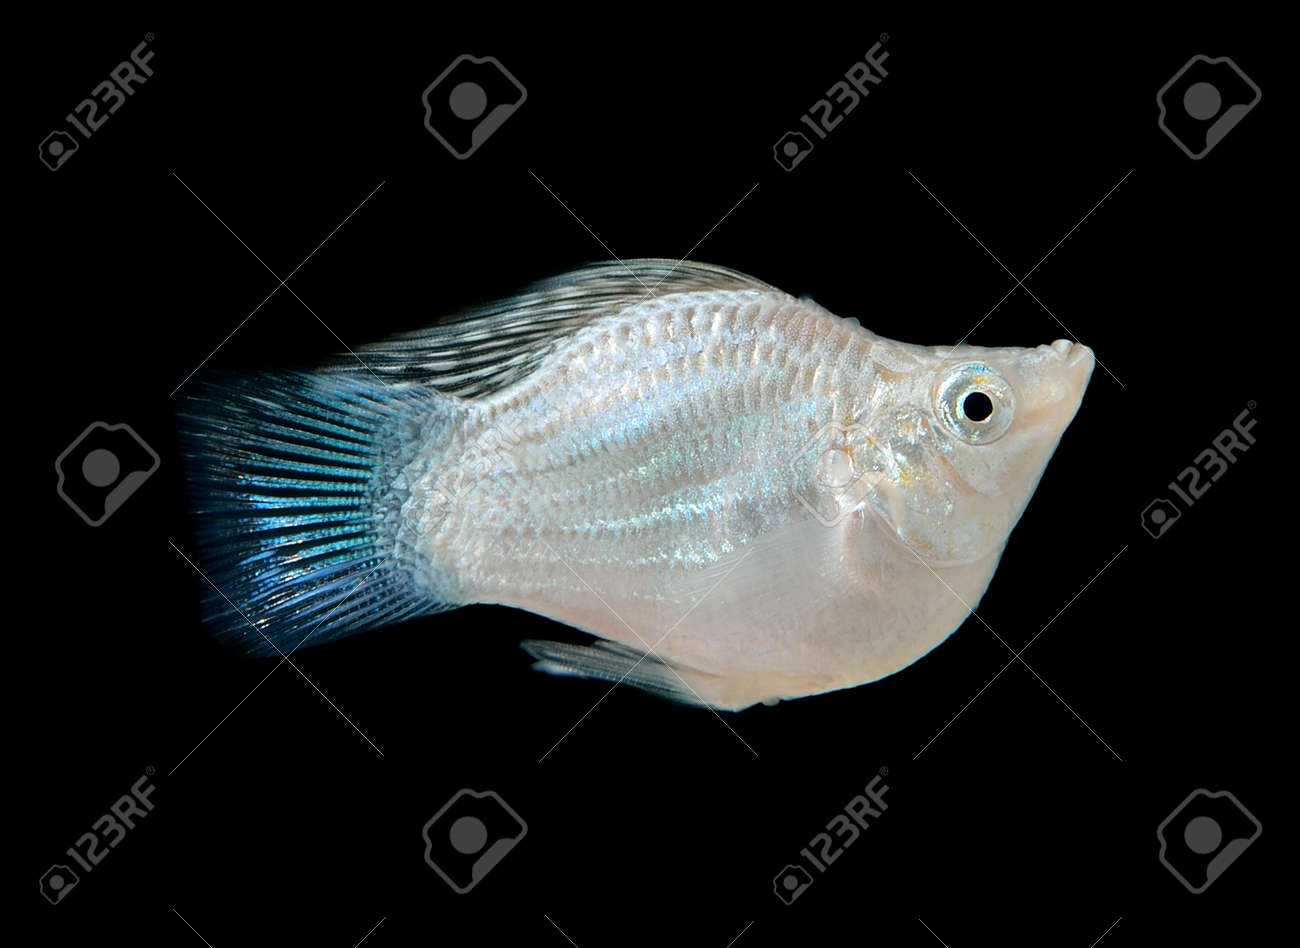 Balloon Silver Molly Fish On Black Stock Photo Picture And Royalty Free Image Image 38608174